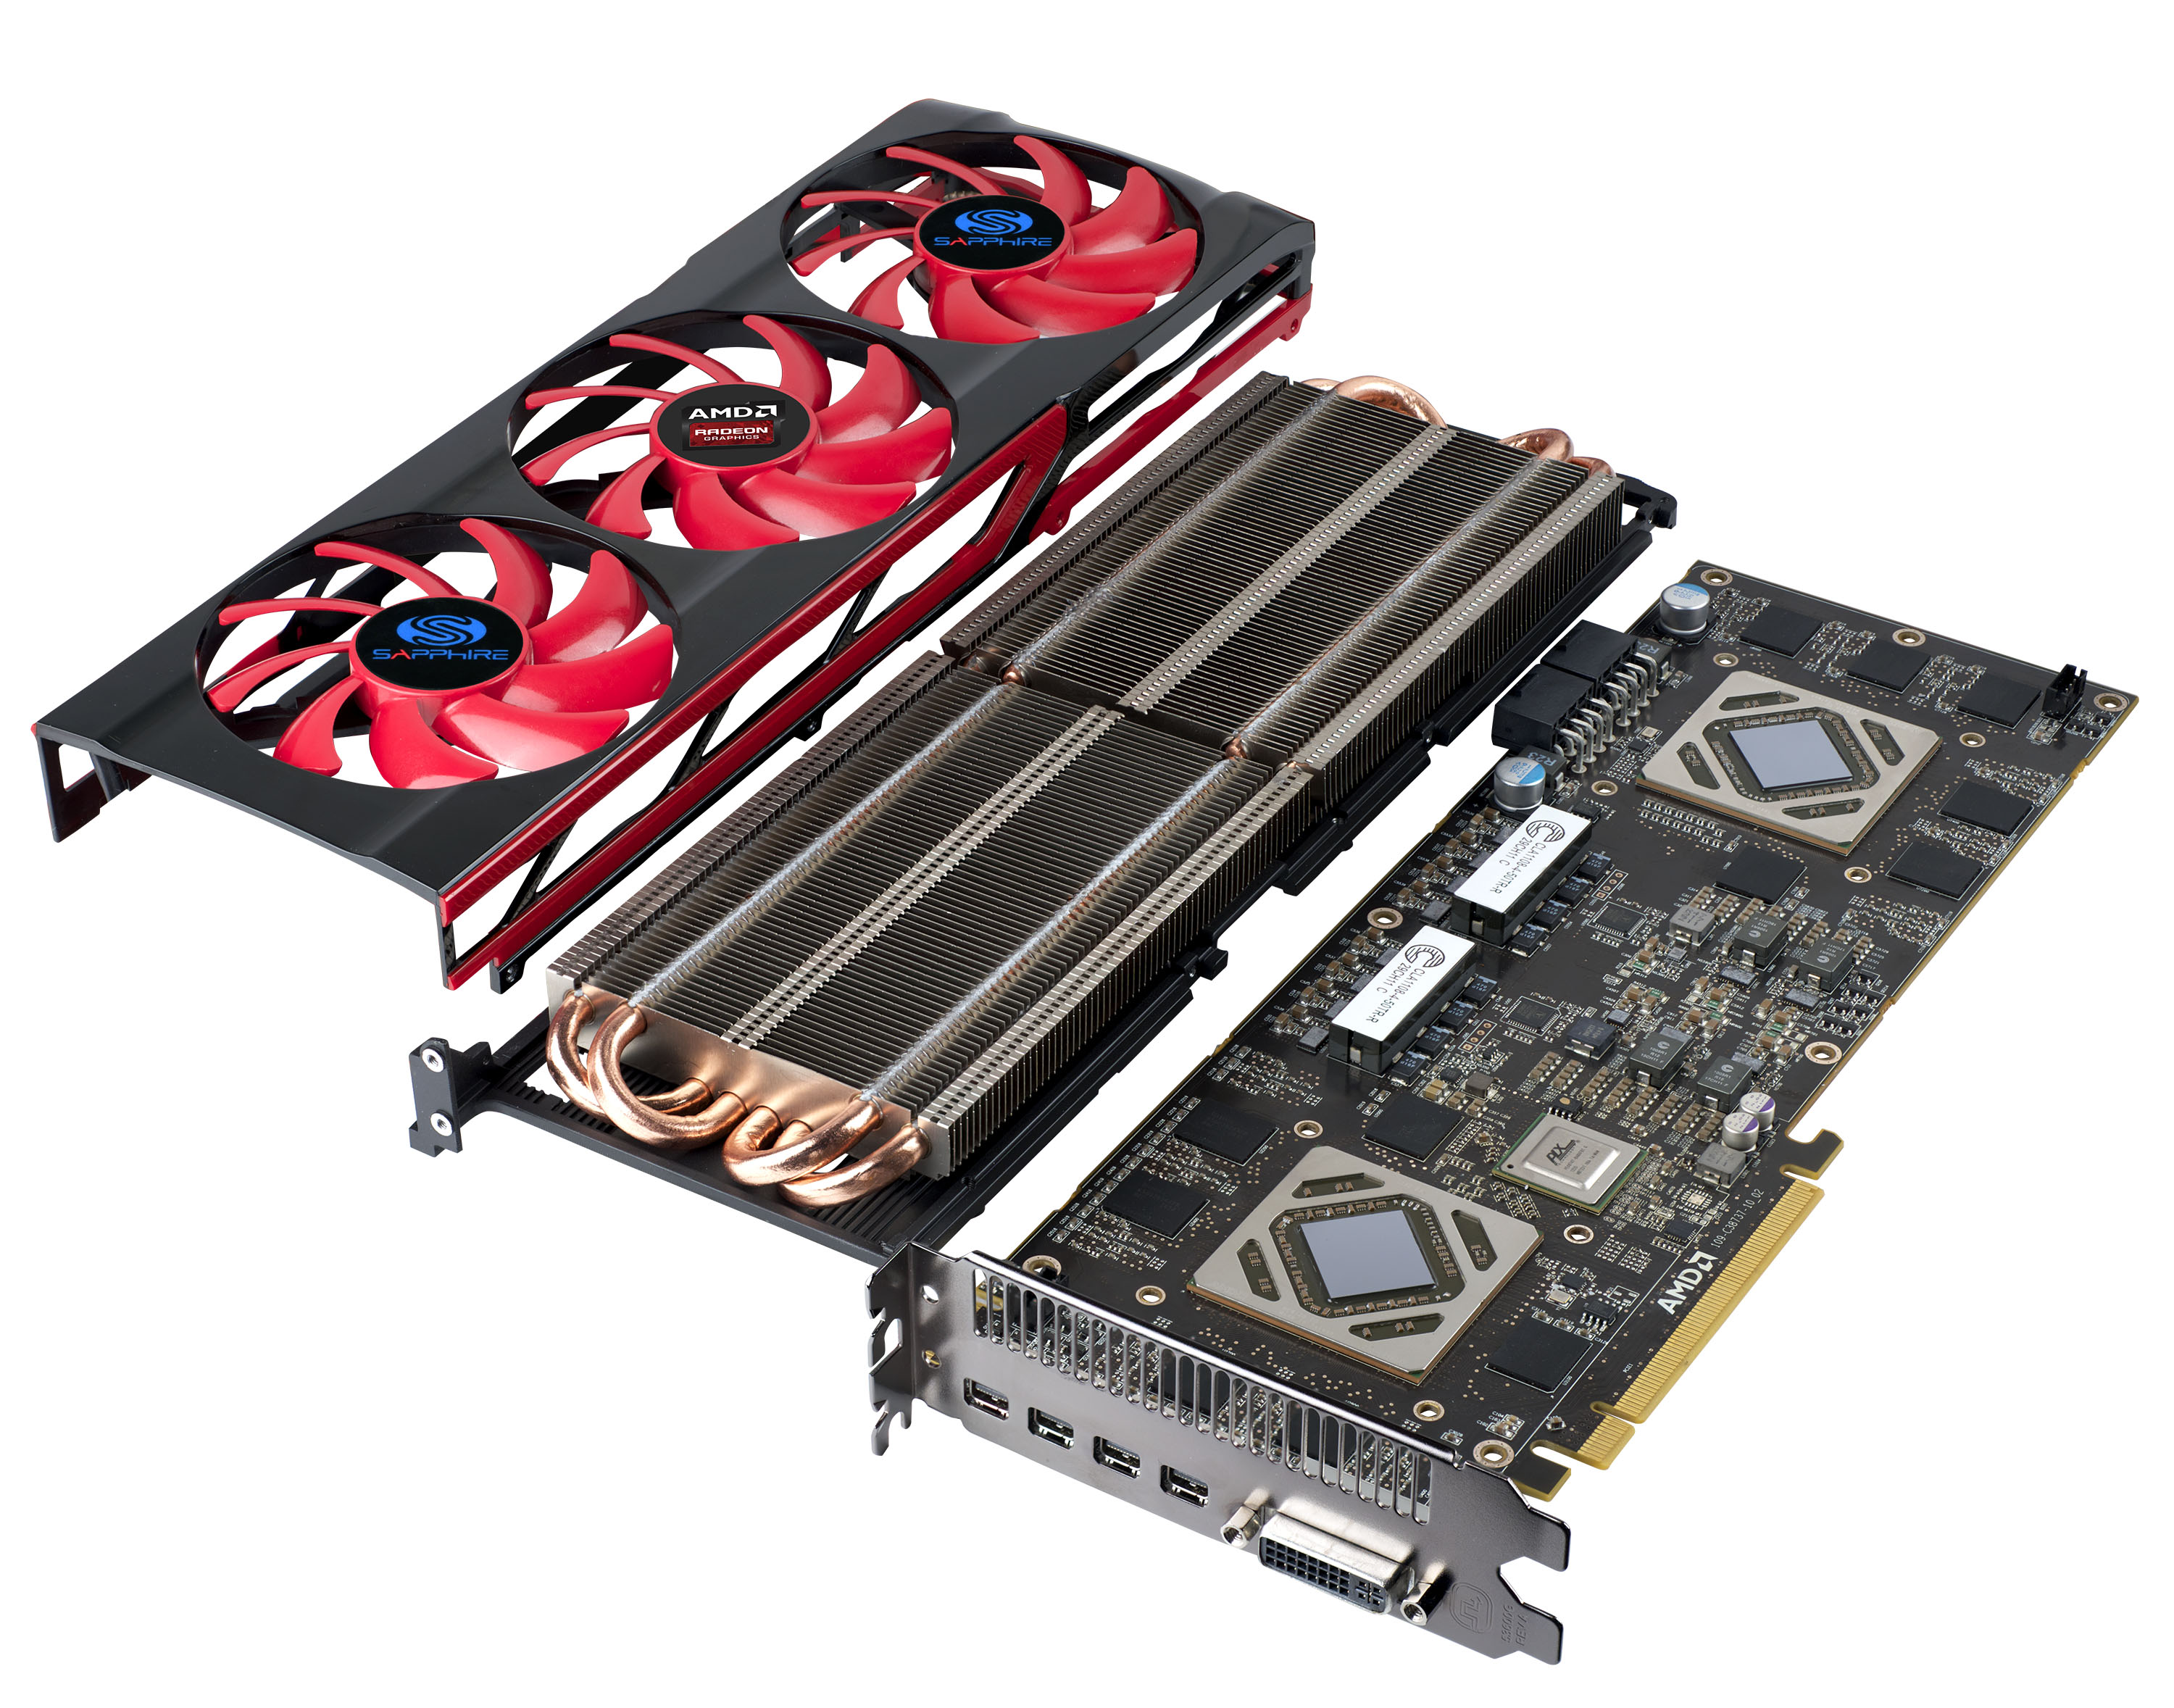 AMD and SAPPHIRE Releases The SAPPHIRE HD 7990 AMD, Sapphire, Video Card 3